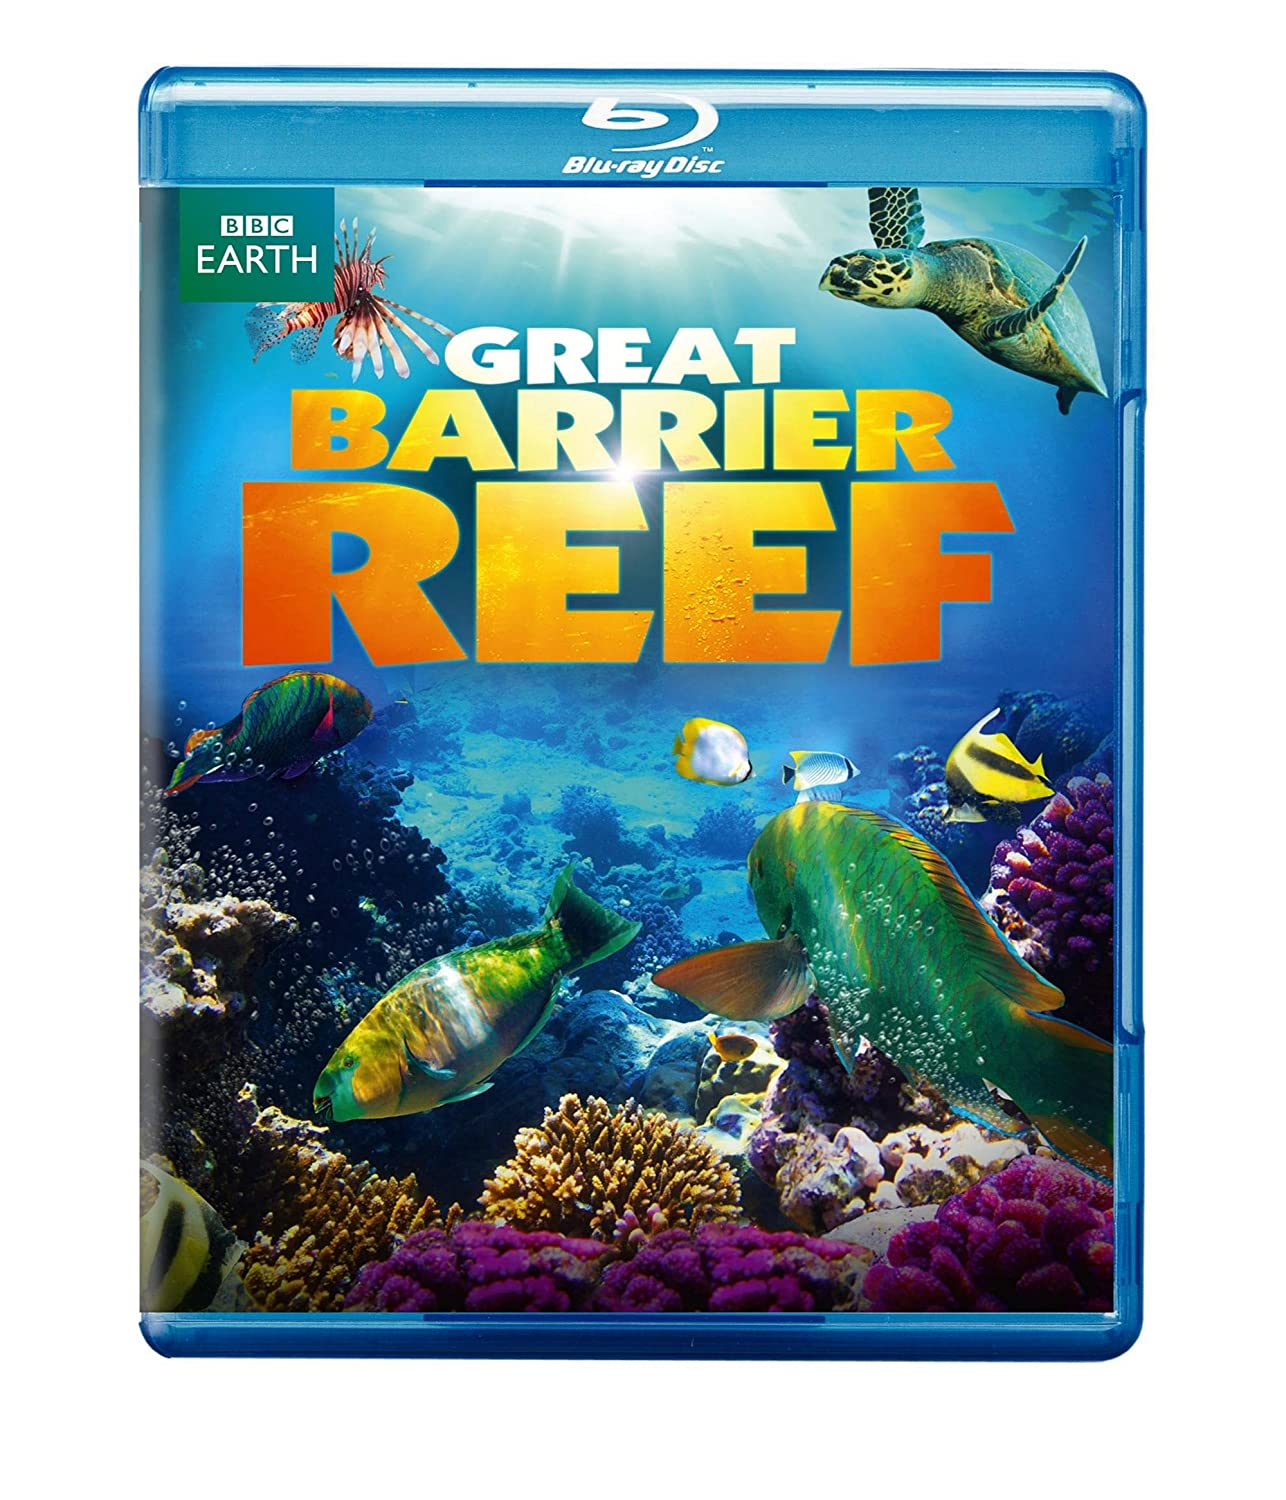 Amazon: The Great Barrier Reef Blu-ray Only $14.15 (Reg